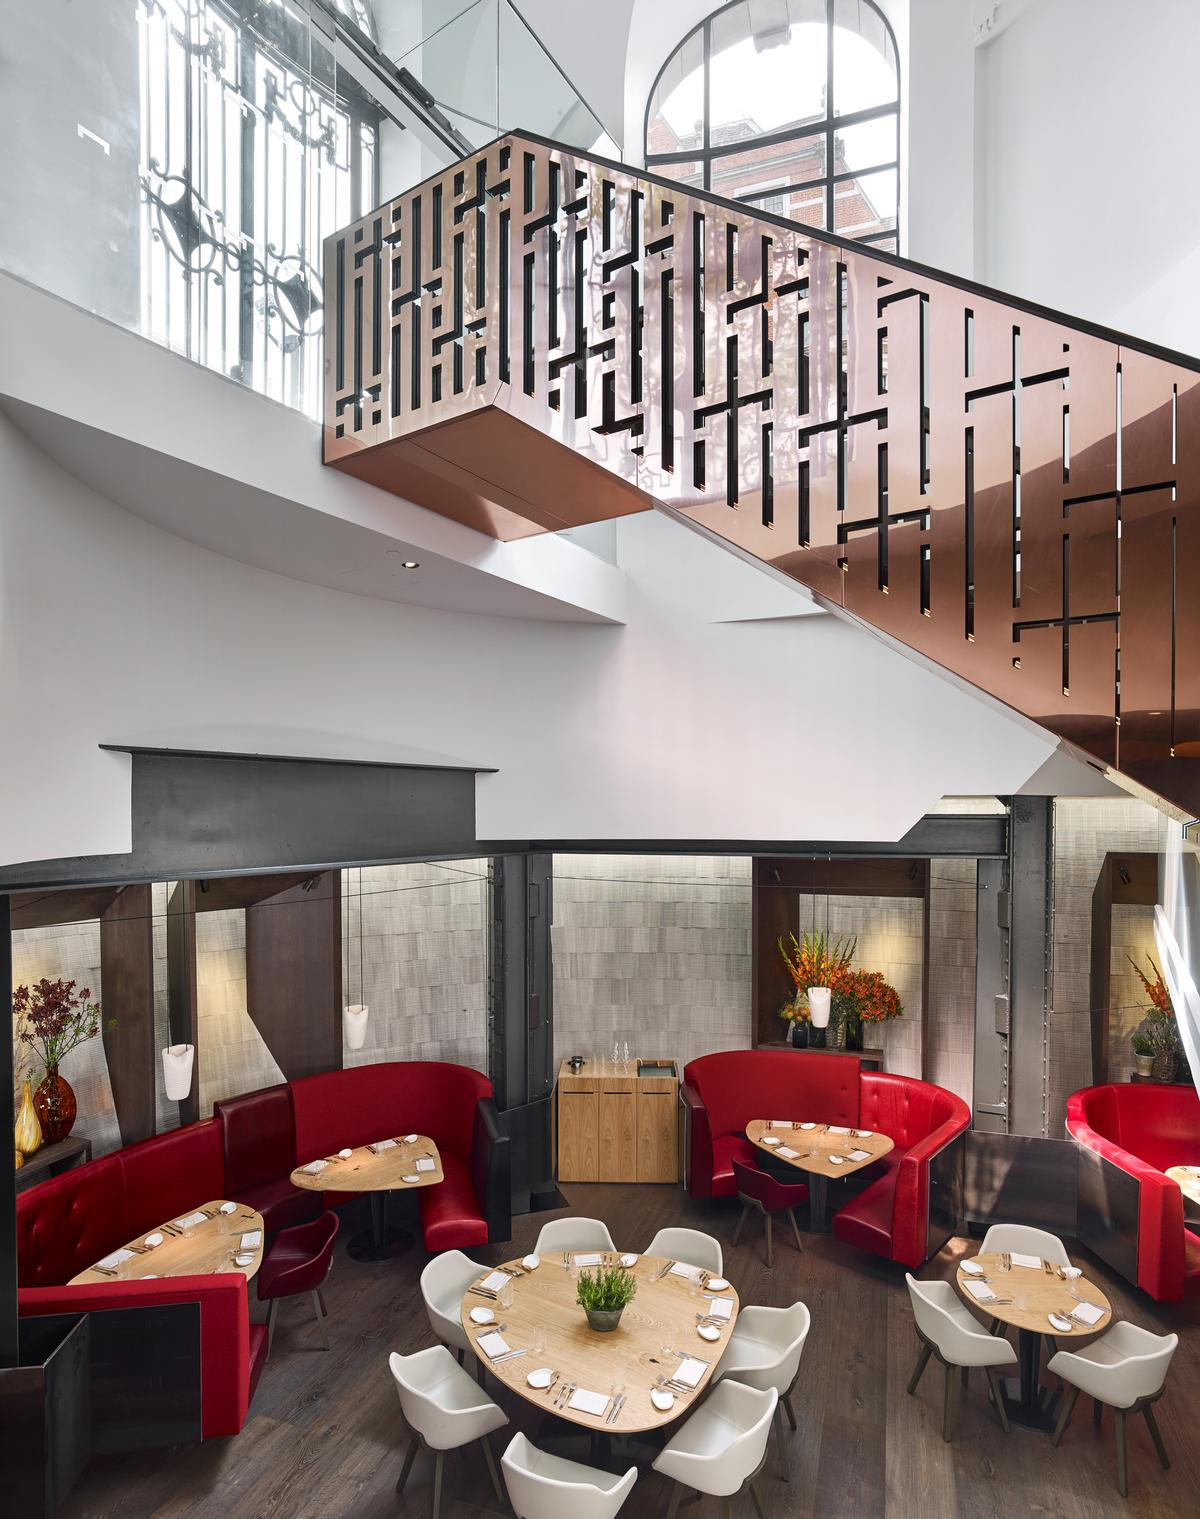 A new mezzanine level was created for the restaurant / Eneko at One Aldwych